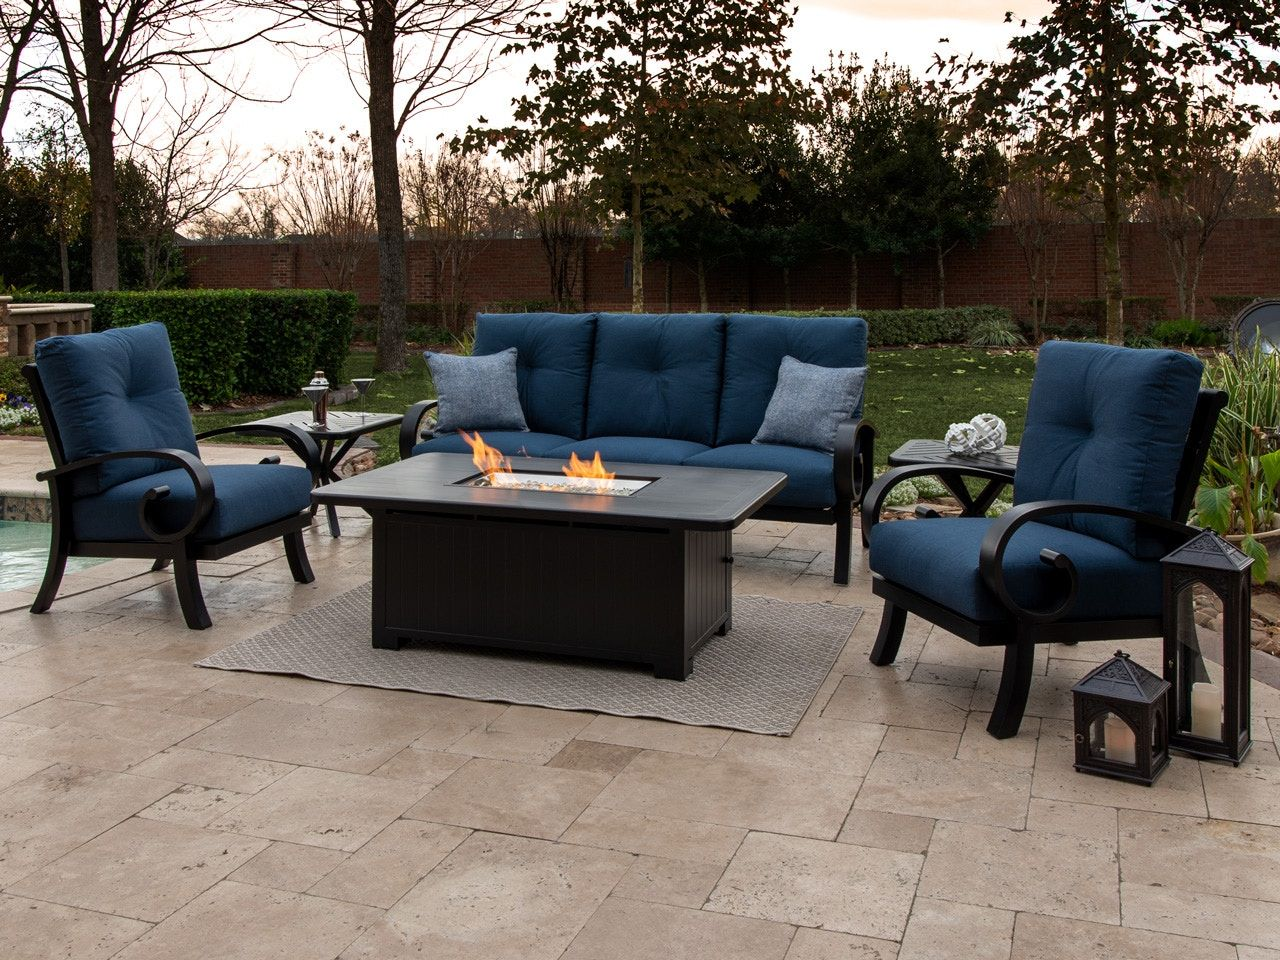 Download Wallpaper Patio Furniture For Sale In Calgary